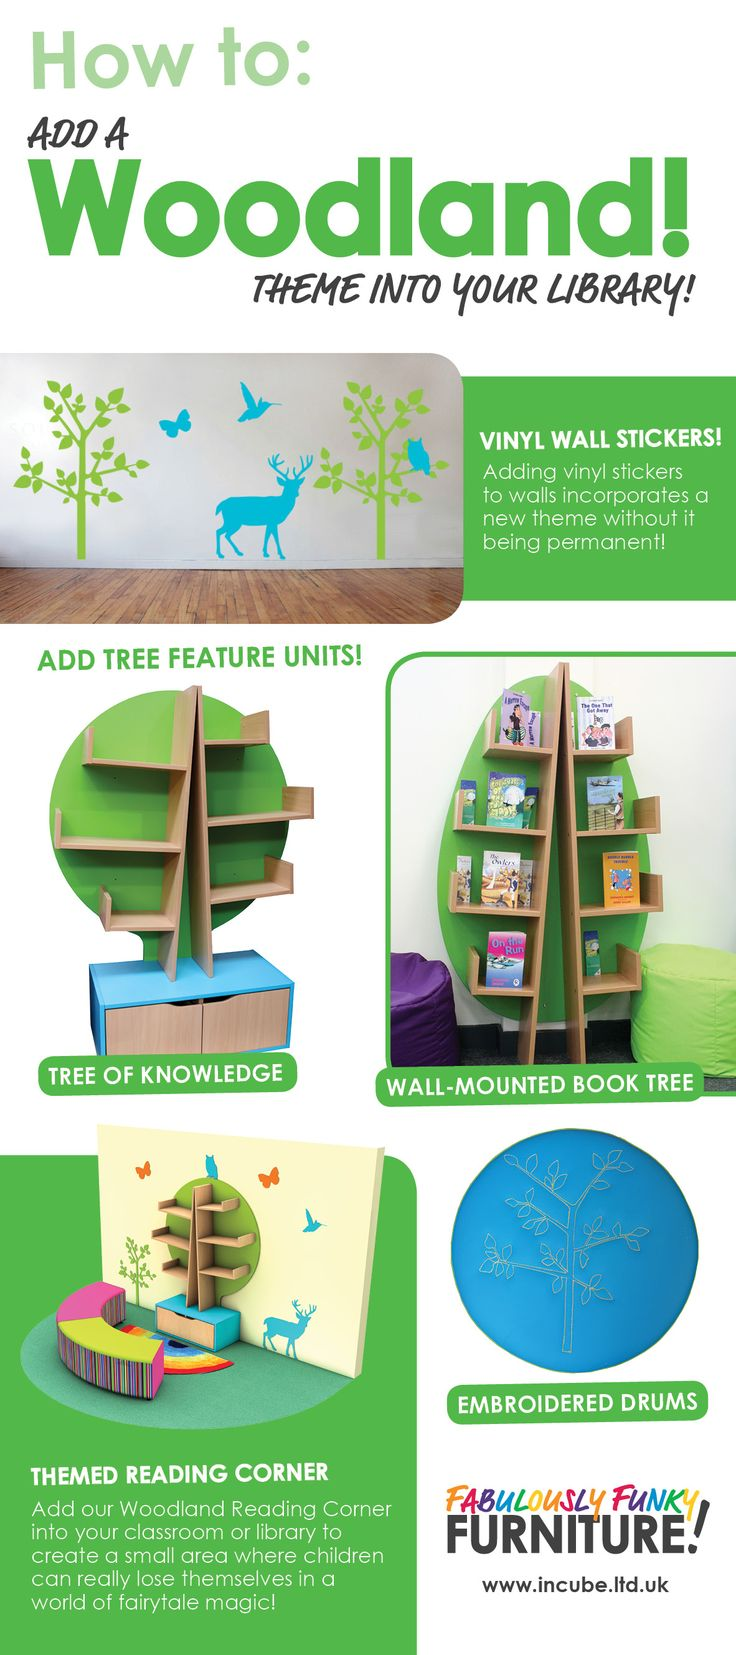 How to add a Woodland theme into your library or classroom with the help of Incube!